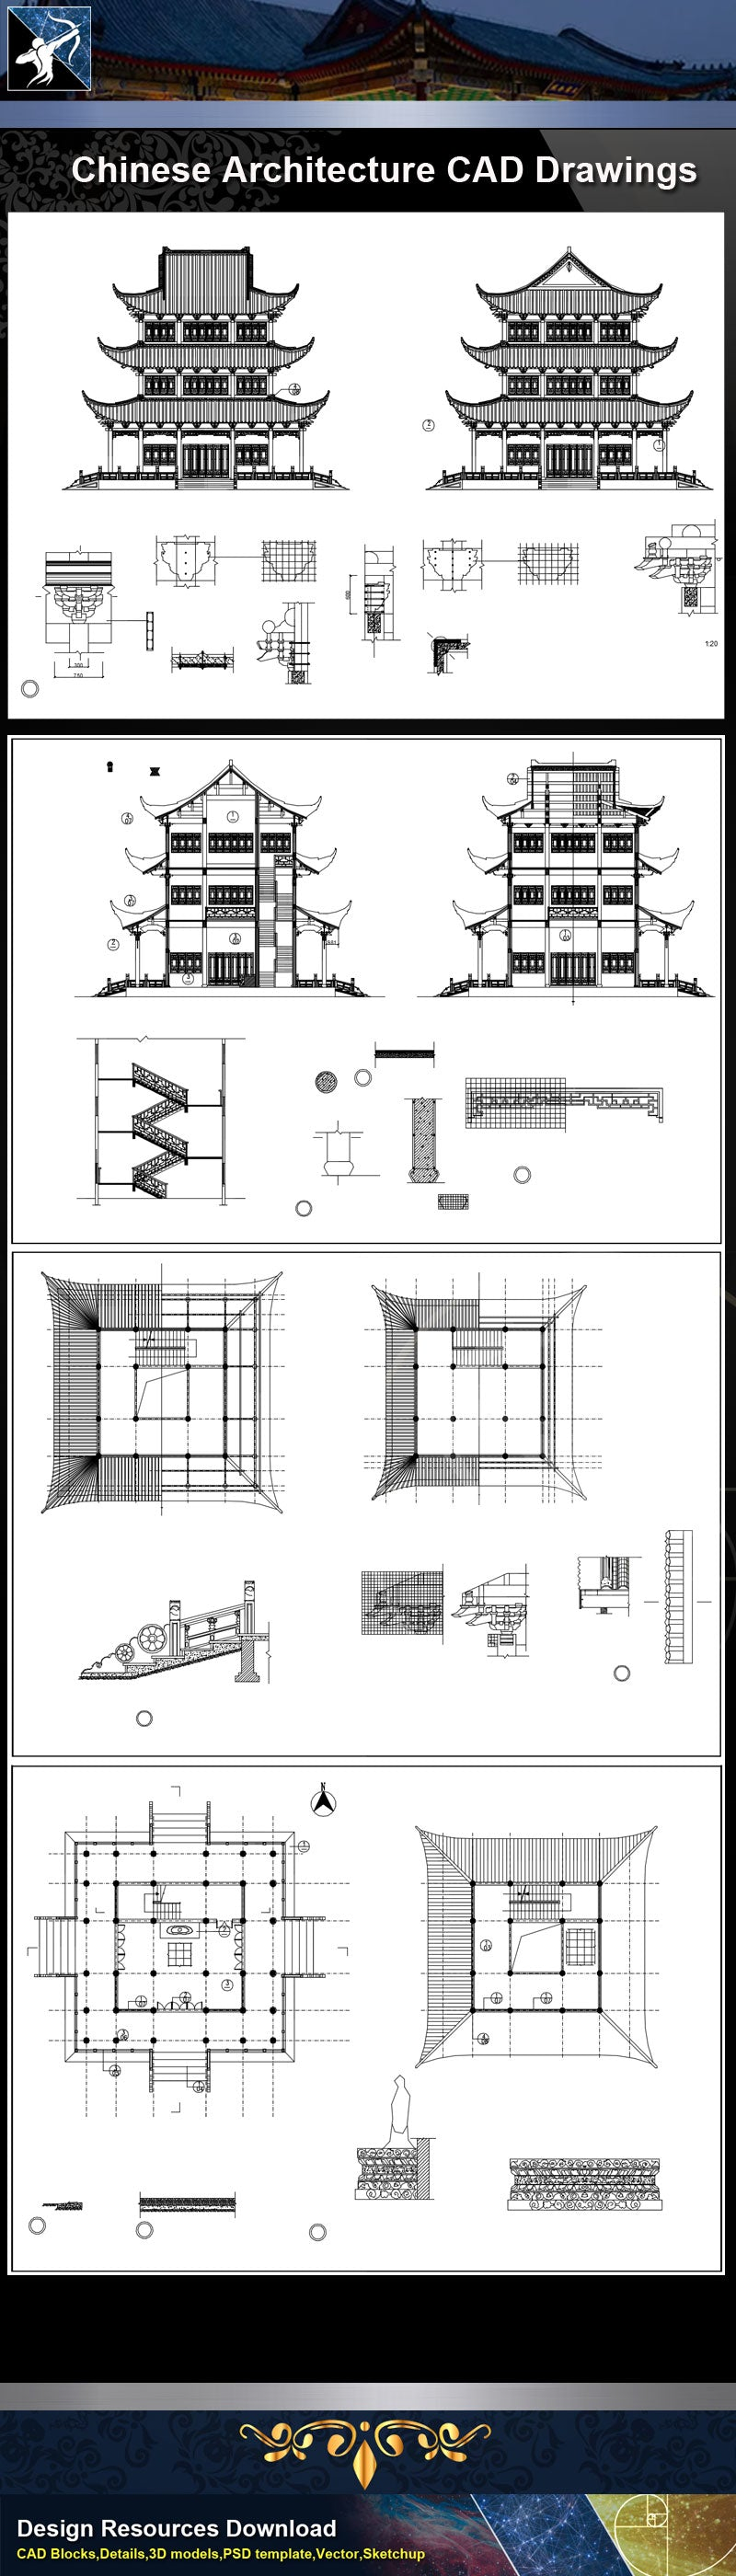 ★Chinese Architecture CAD Drawings-Chinese Tower